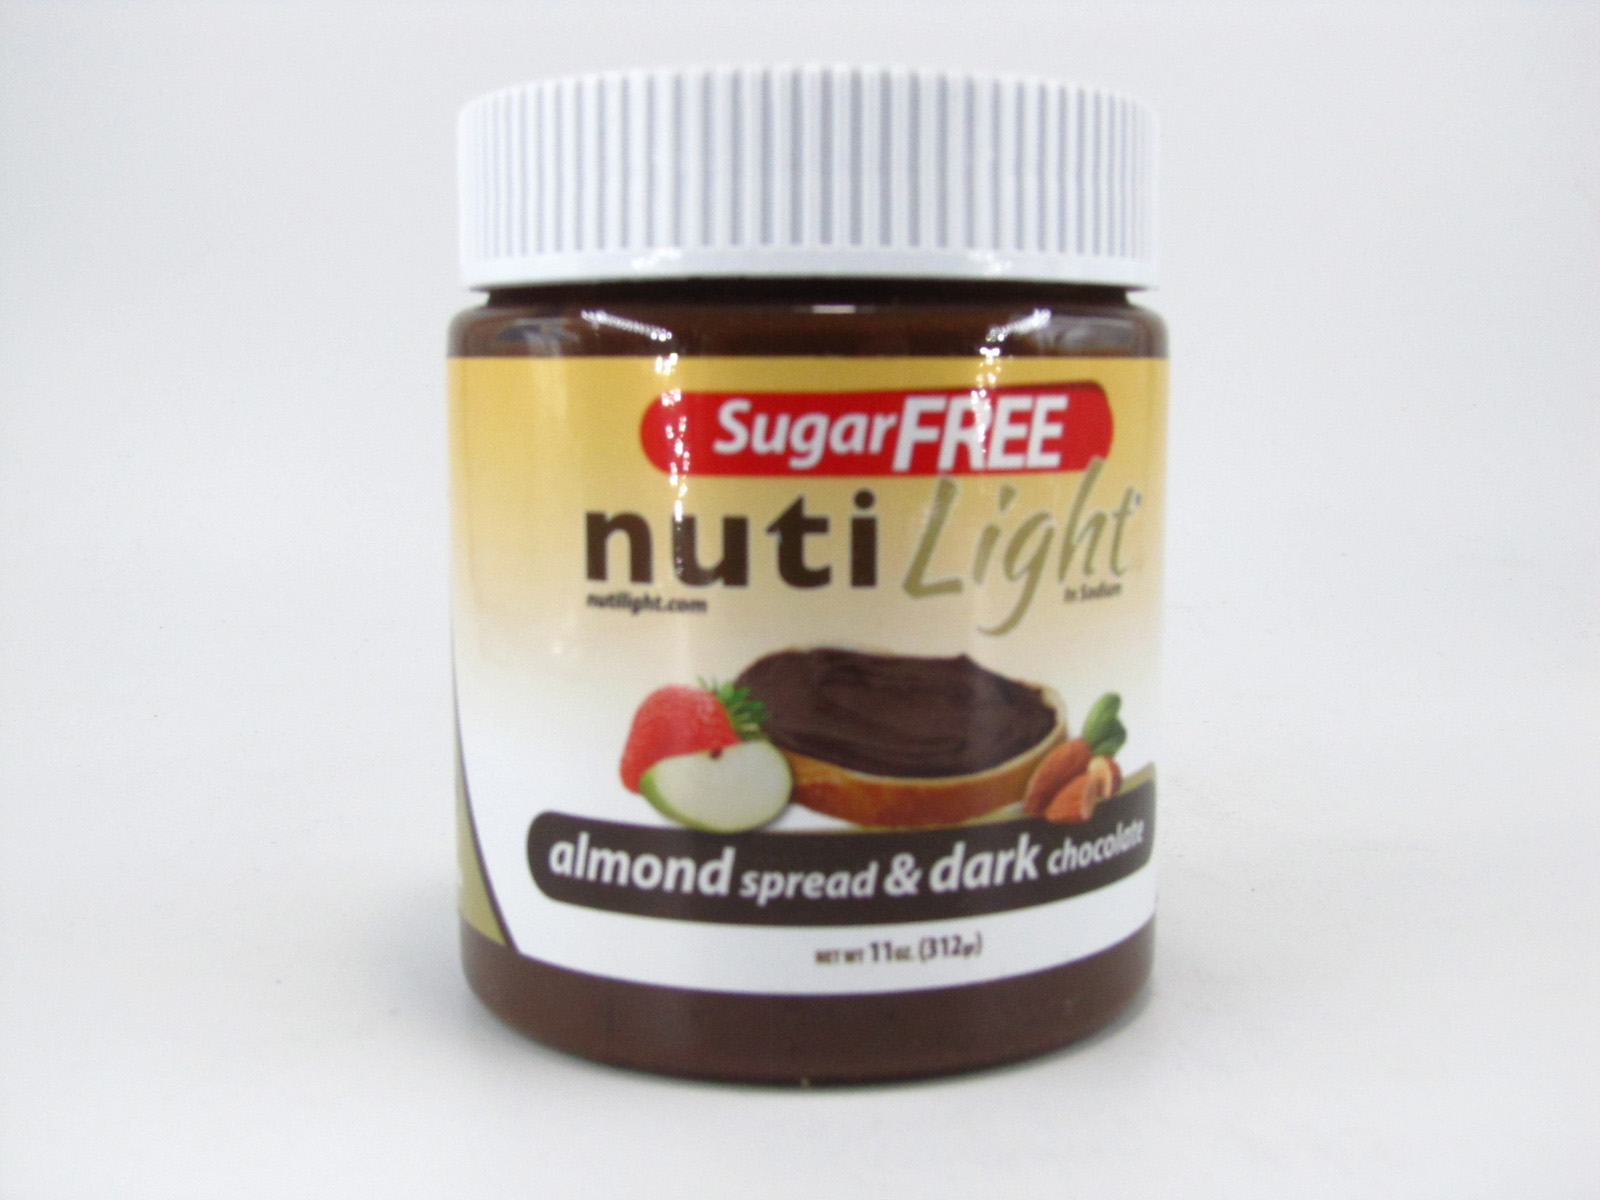 Nuti light - Almond Spread & Dark Chocolate - front view